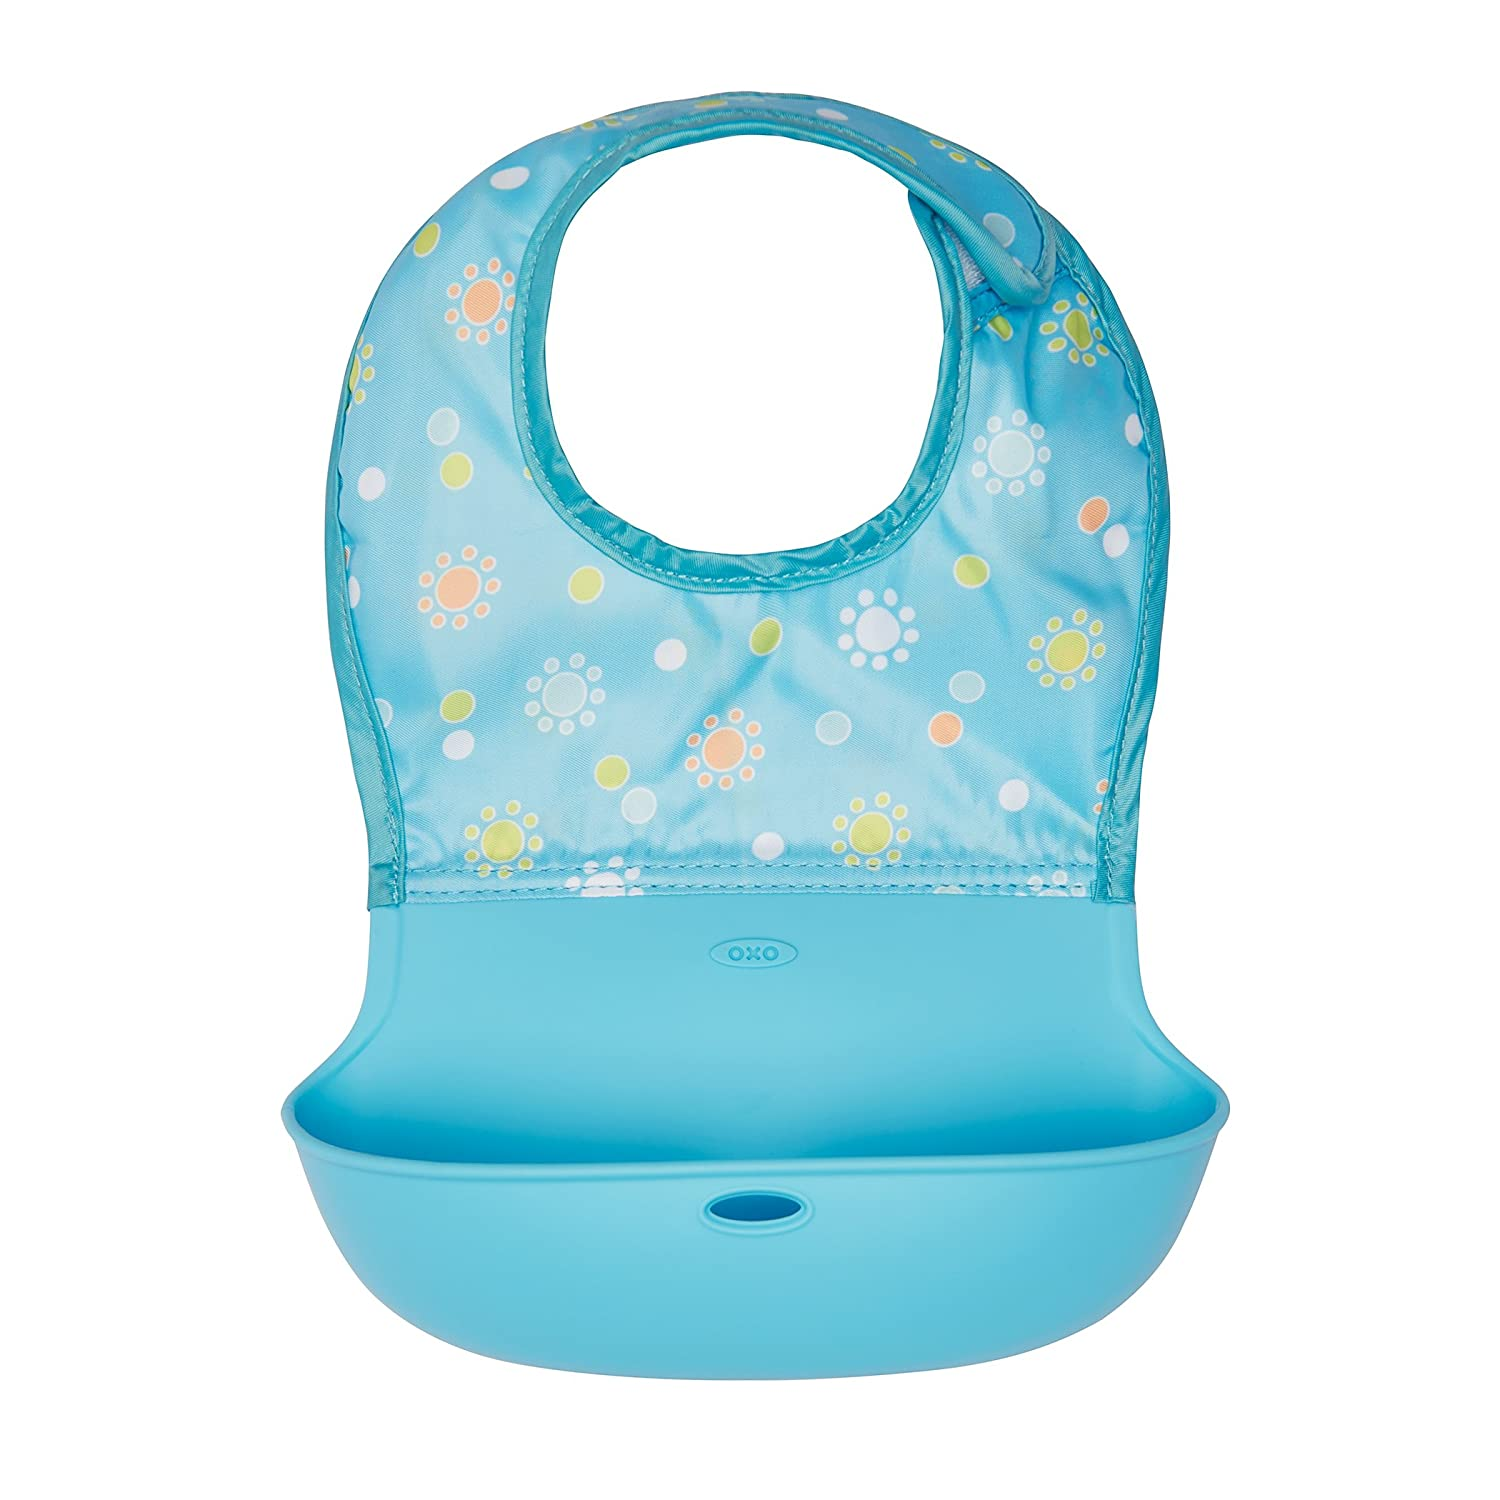 Oxo Tot Silicone Roll Up Bib with Comfort-Fit Fabric Neck, Navy 61114900